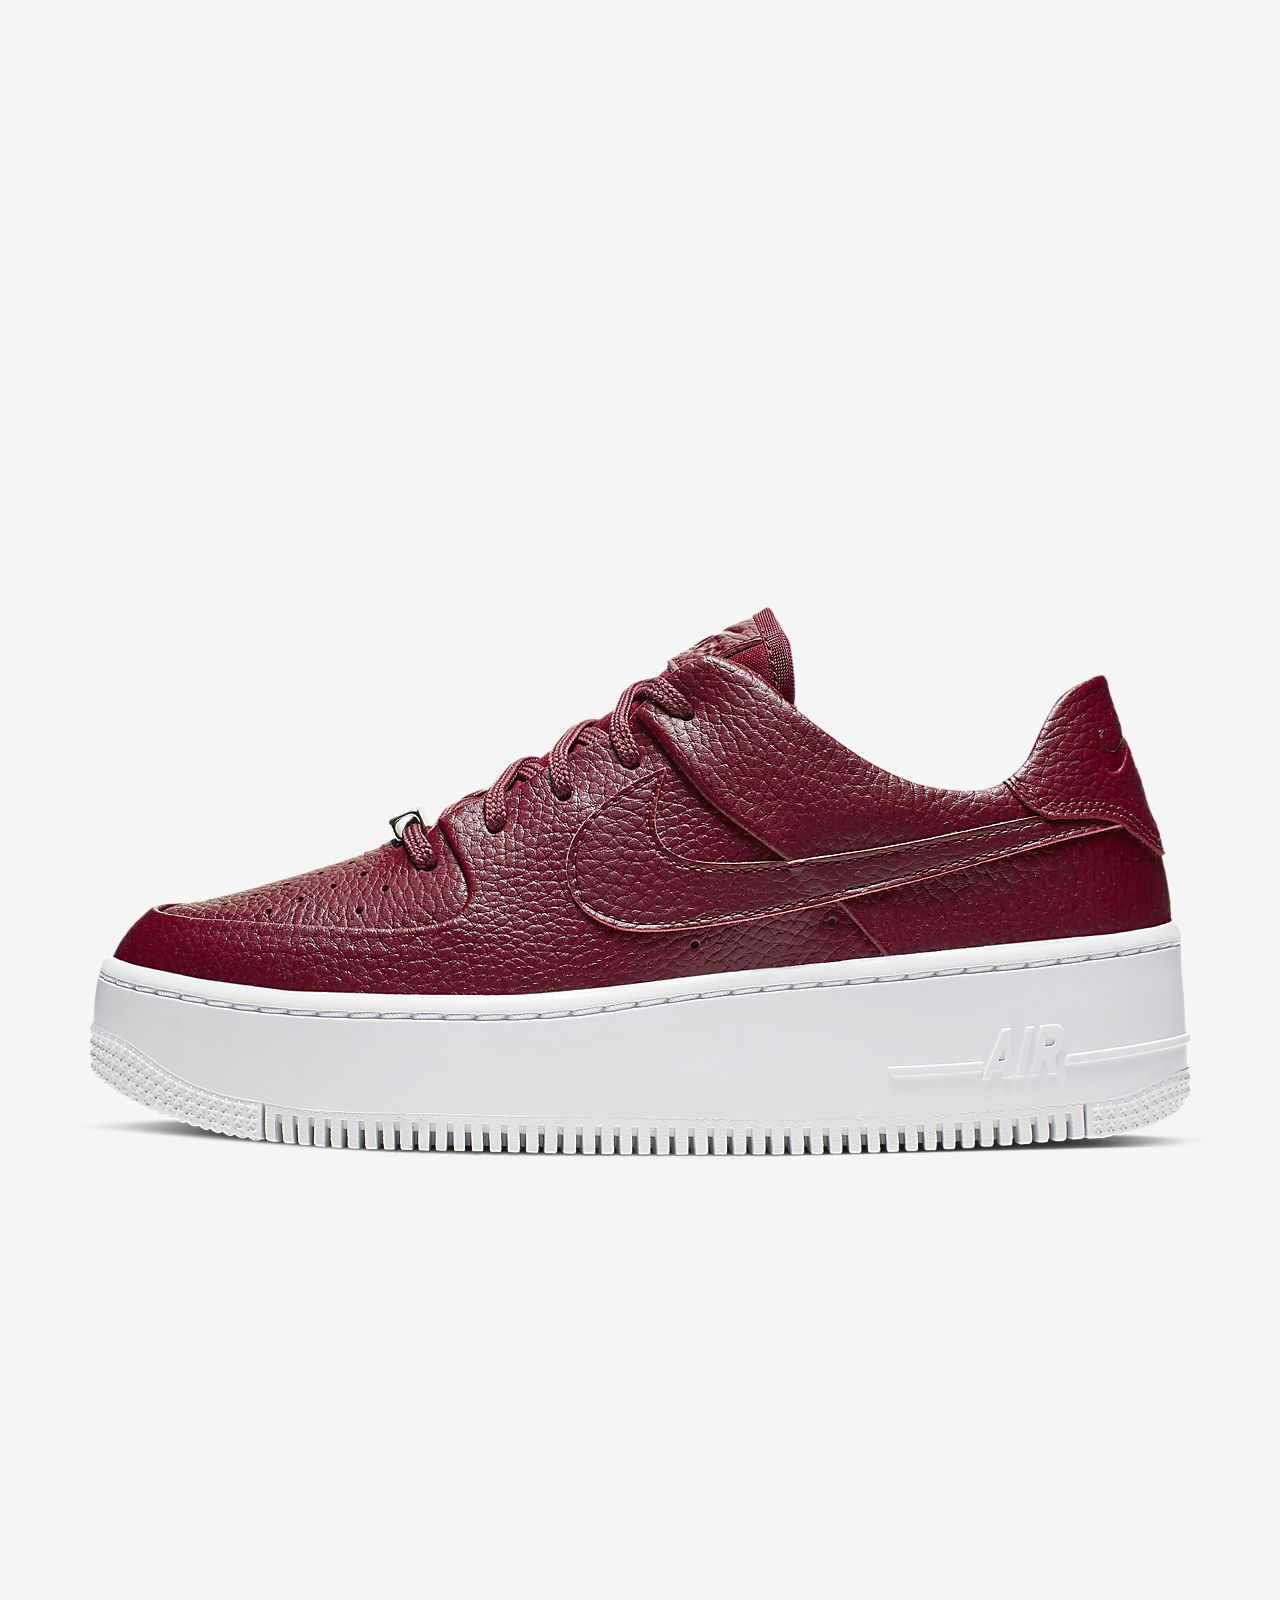 Nike Air Force 1 Sage Low Damenschuh